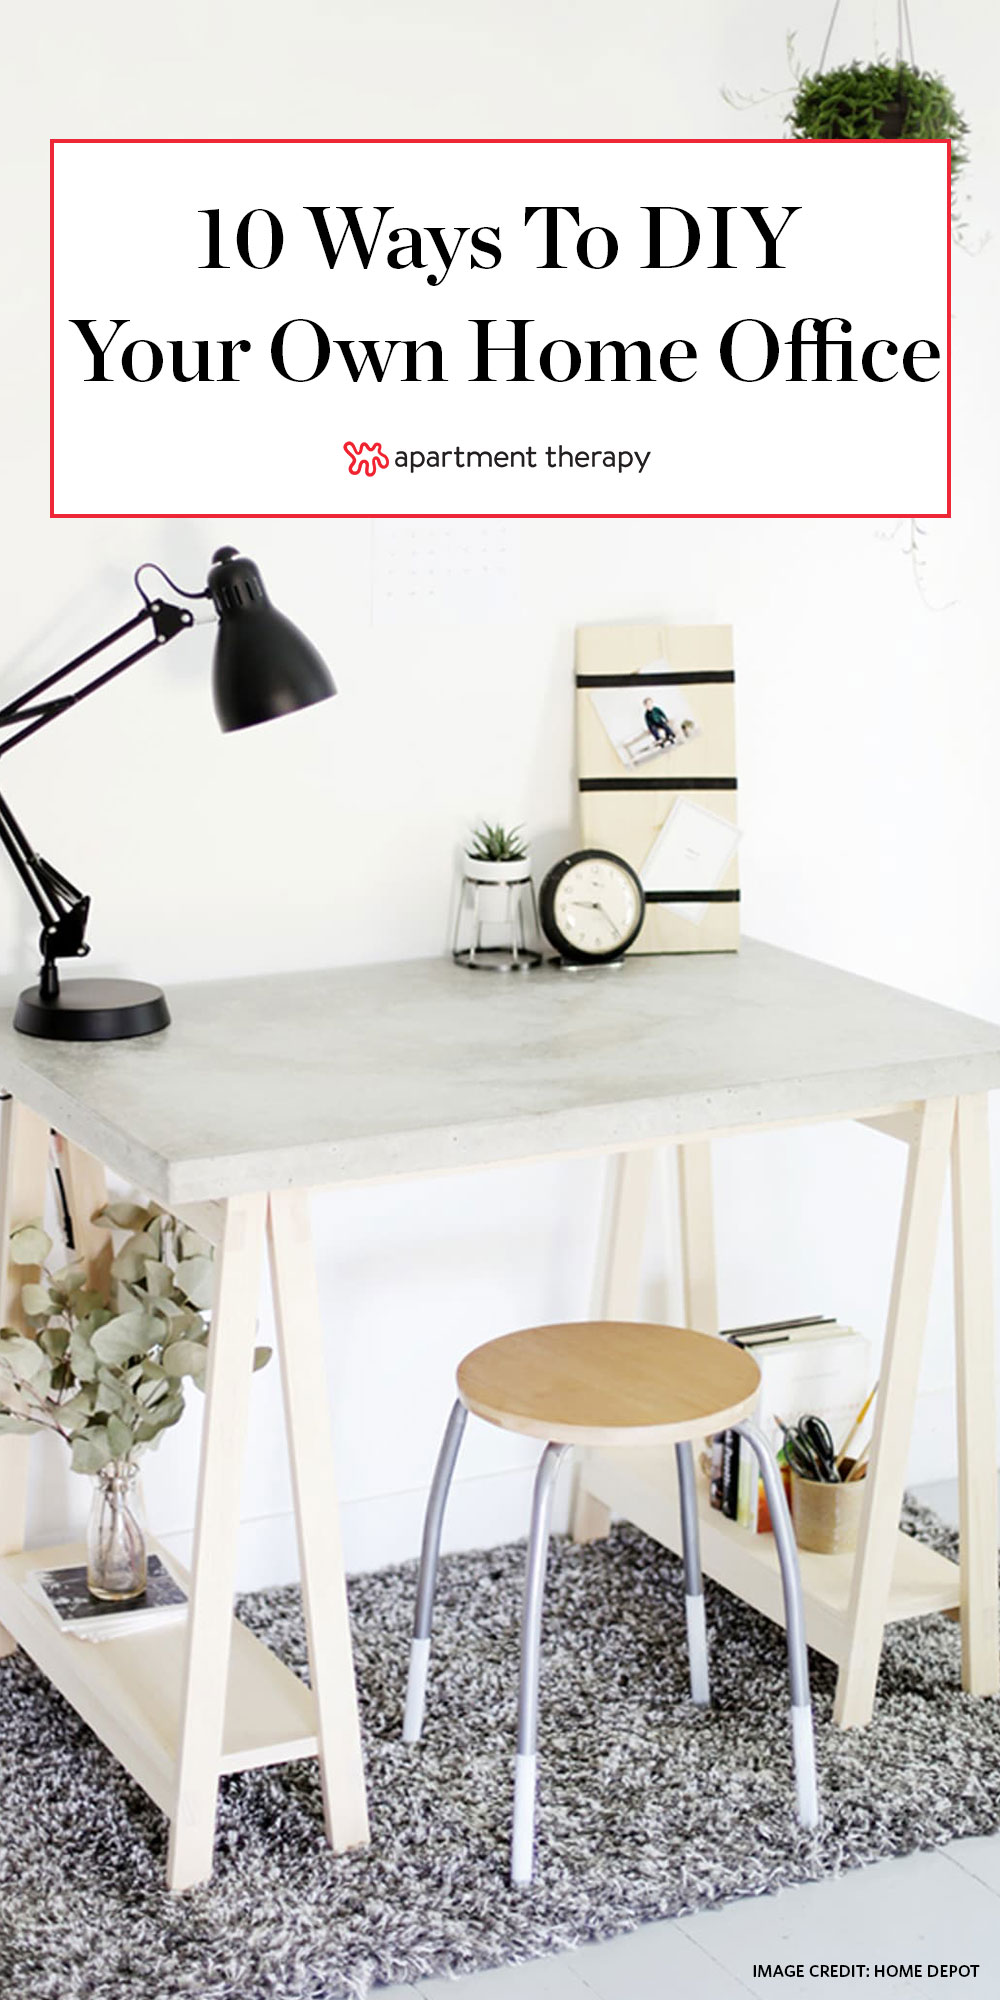 Easy DIY Desk Ideas - How to Make a Desk | Apartment Therapy